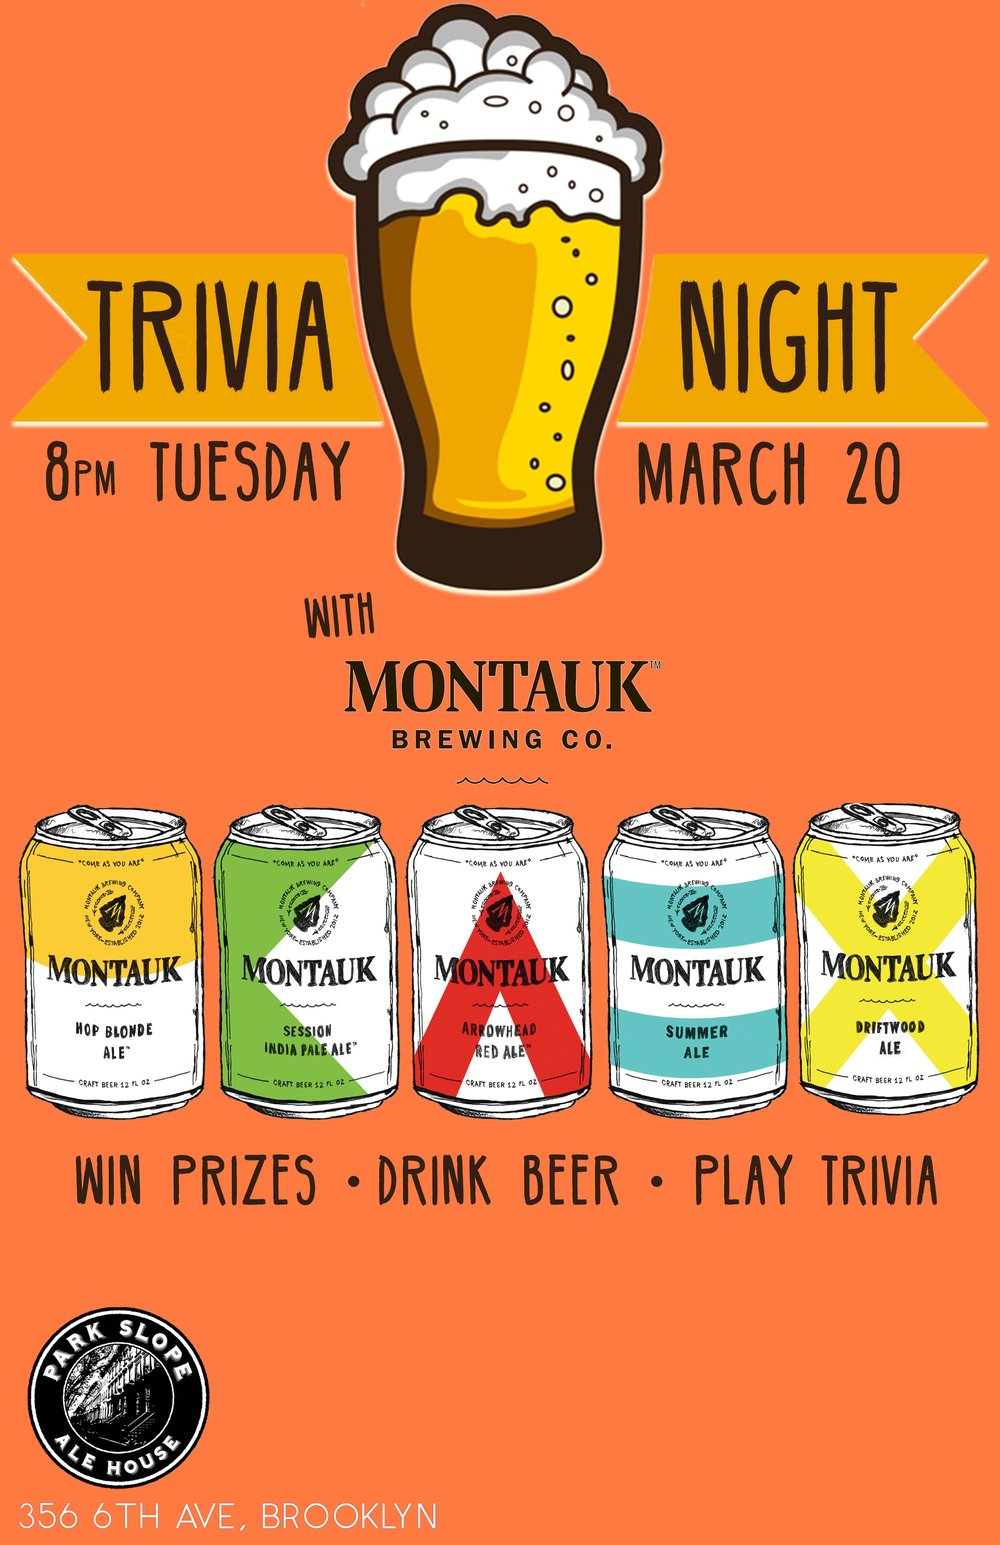 PARK SLOPE ALE HOUSE_MONTUAK TRIVIA NIGHT.jpg